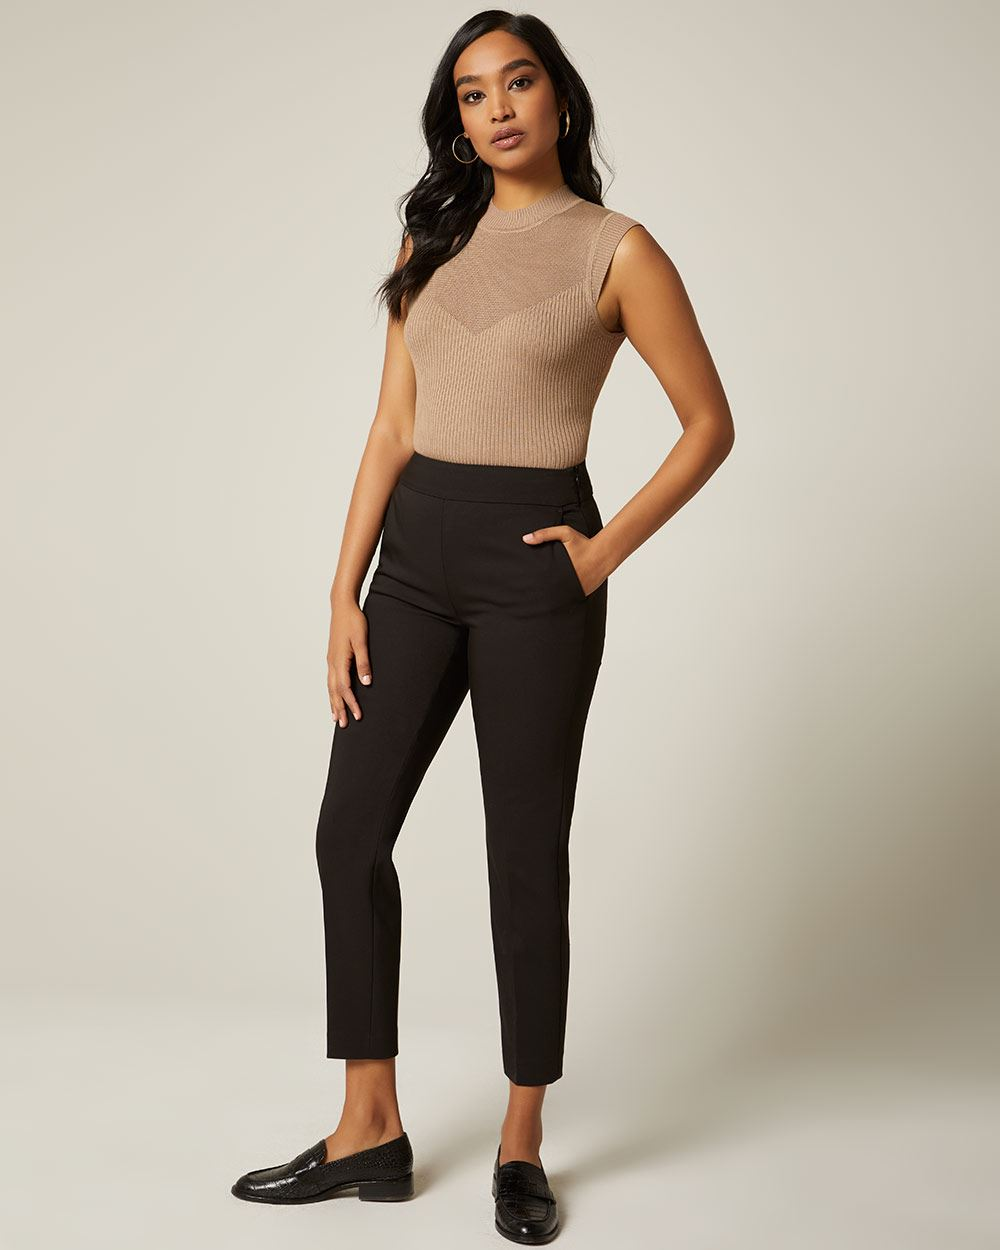 Modern chic High-waist Signature fit Slim Leg Ankle Pant